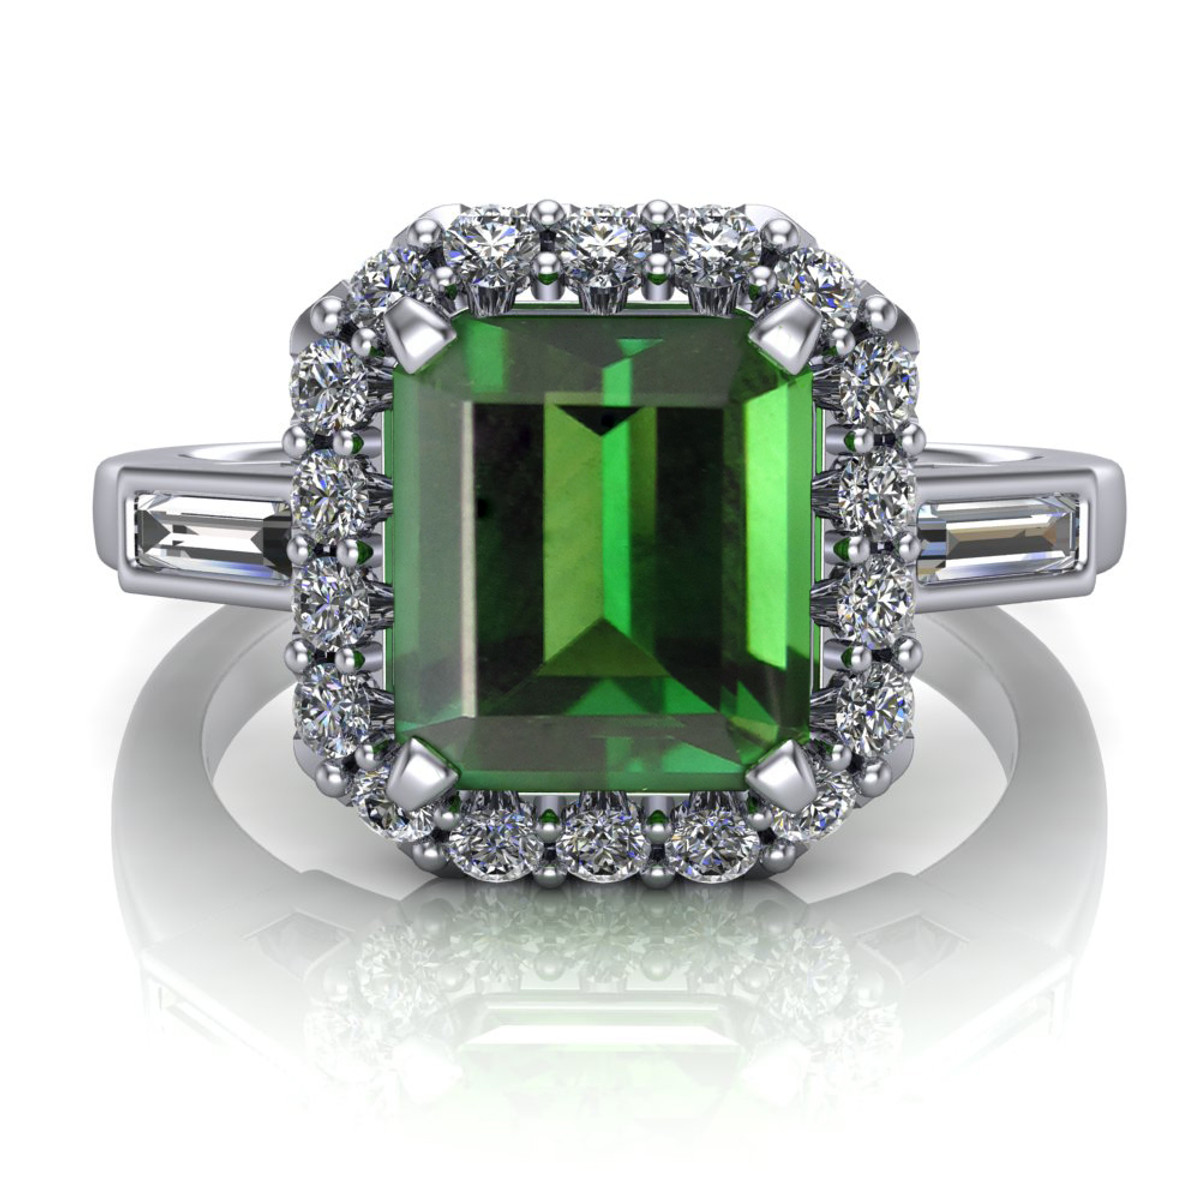 rings information rainbow engagement the harriet gemstone tourmaline green kelsall ring